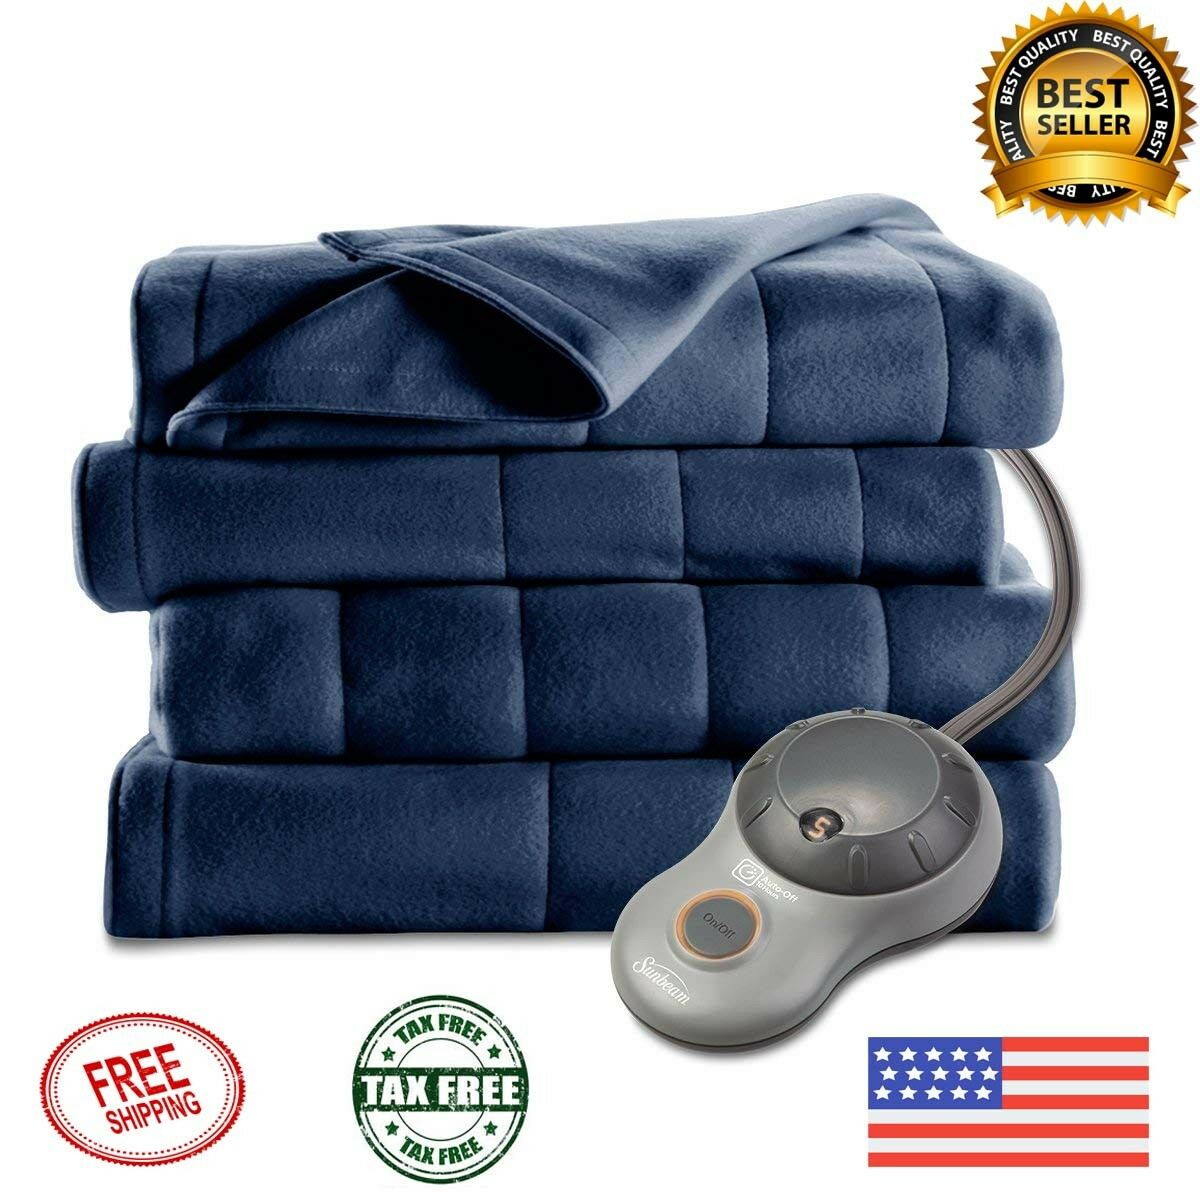 ELECTRIC HEATED BLANKET Full Size Quilted Fleece Warming Bedding With Auto Off